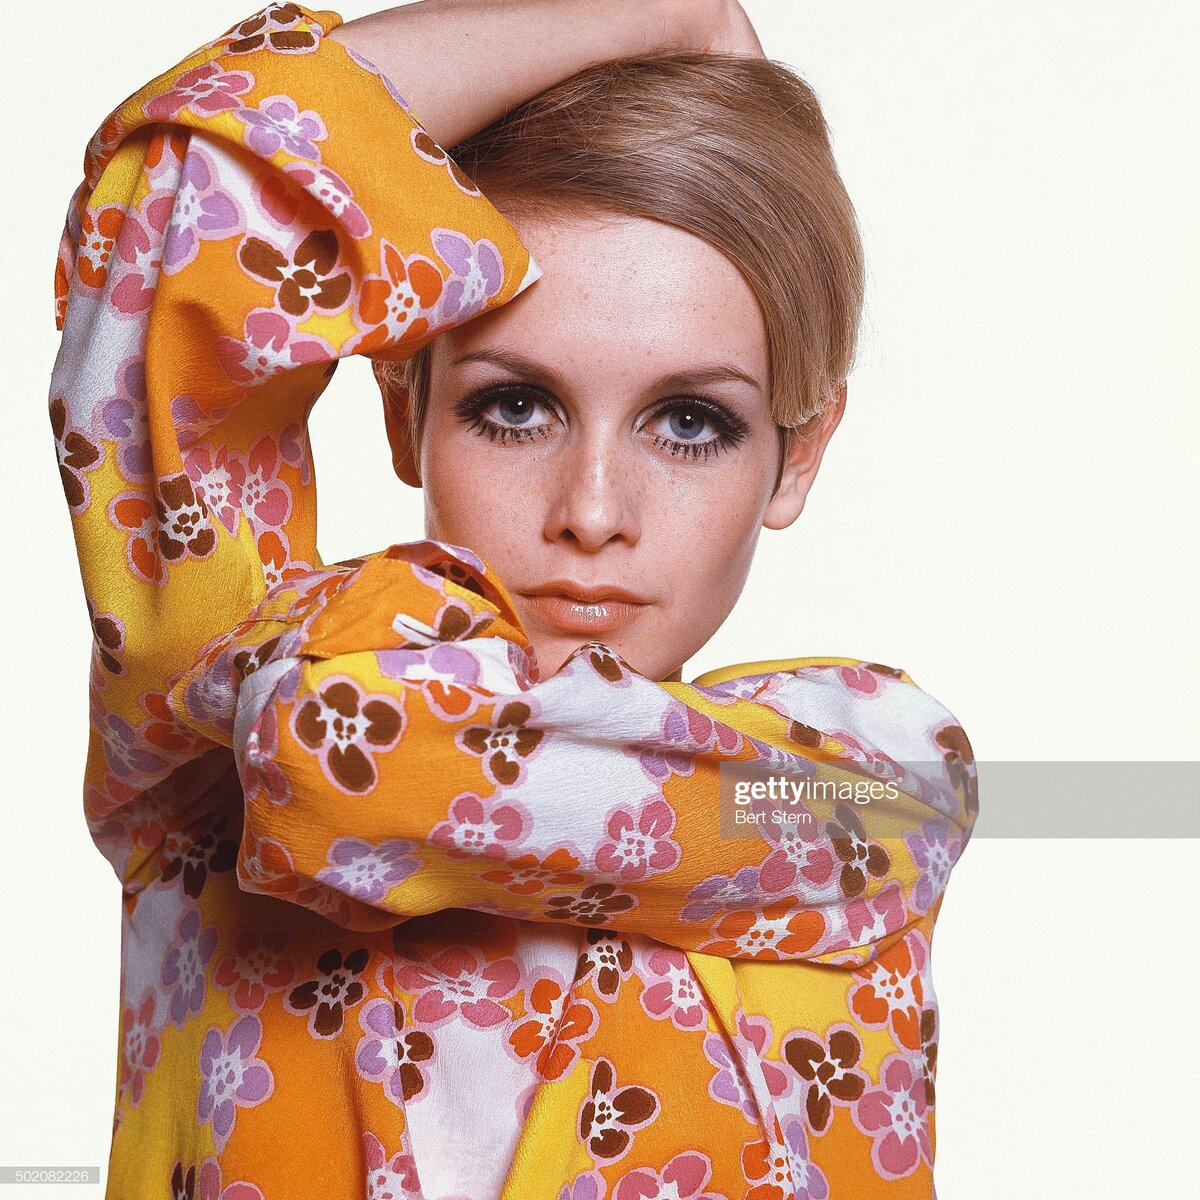 Твигги для Vogue 1967 (Photo by Bert Stern/Condé Nast via Getty Images)